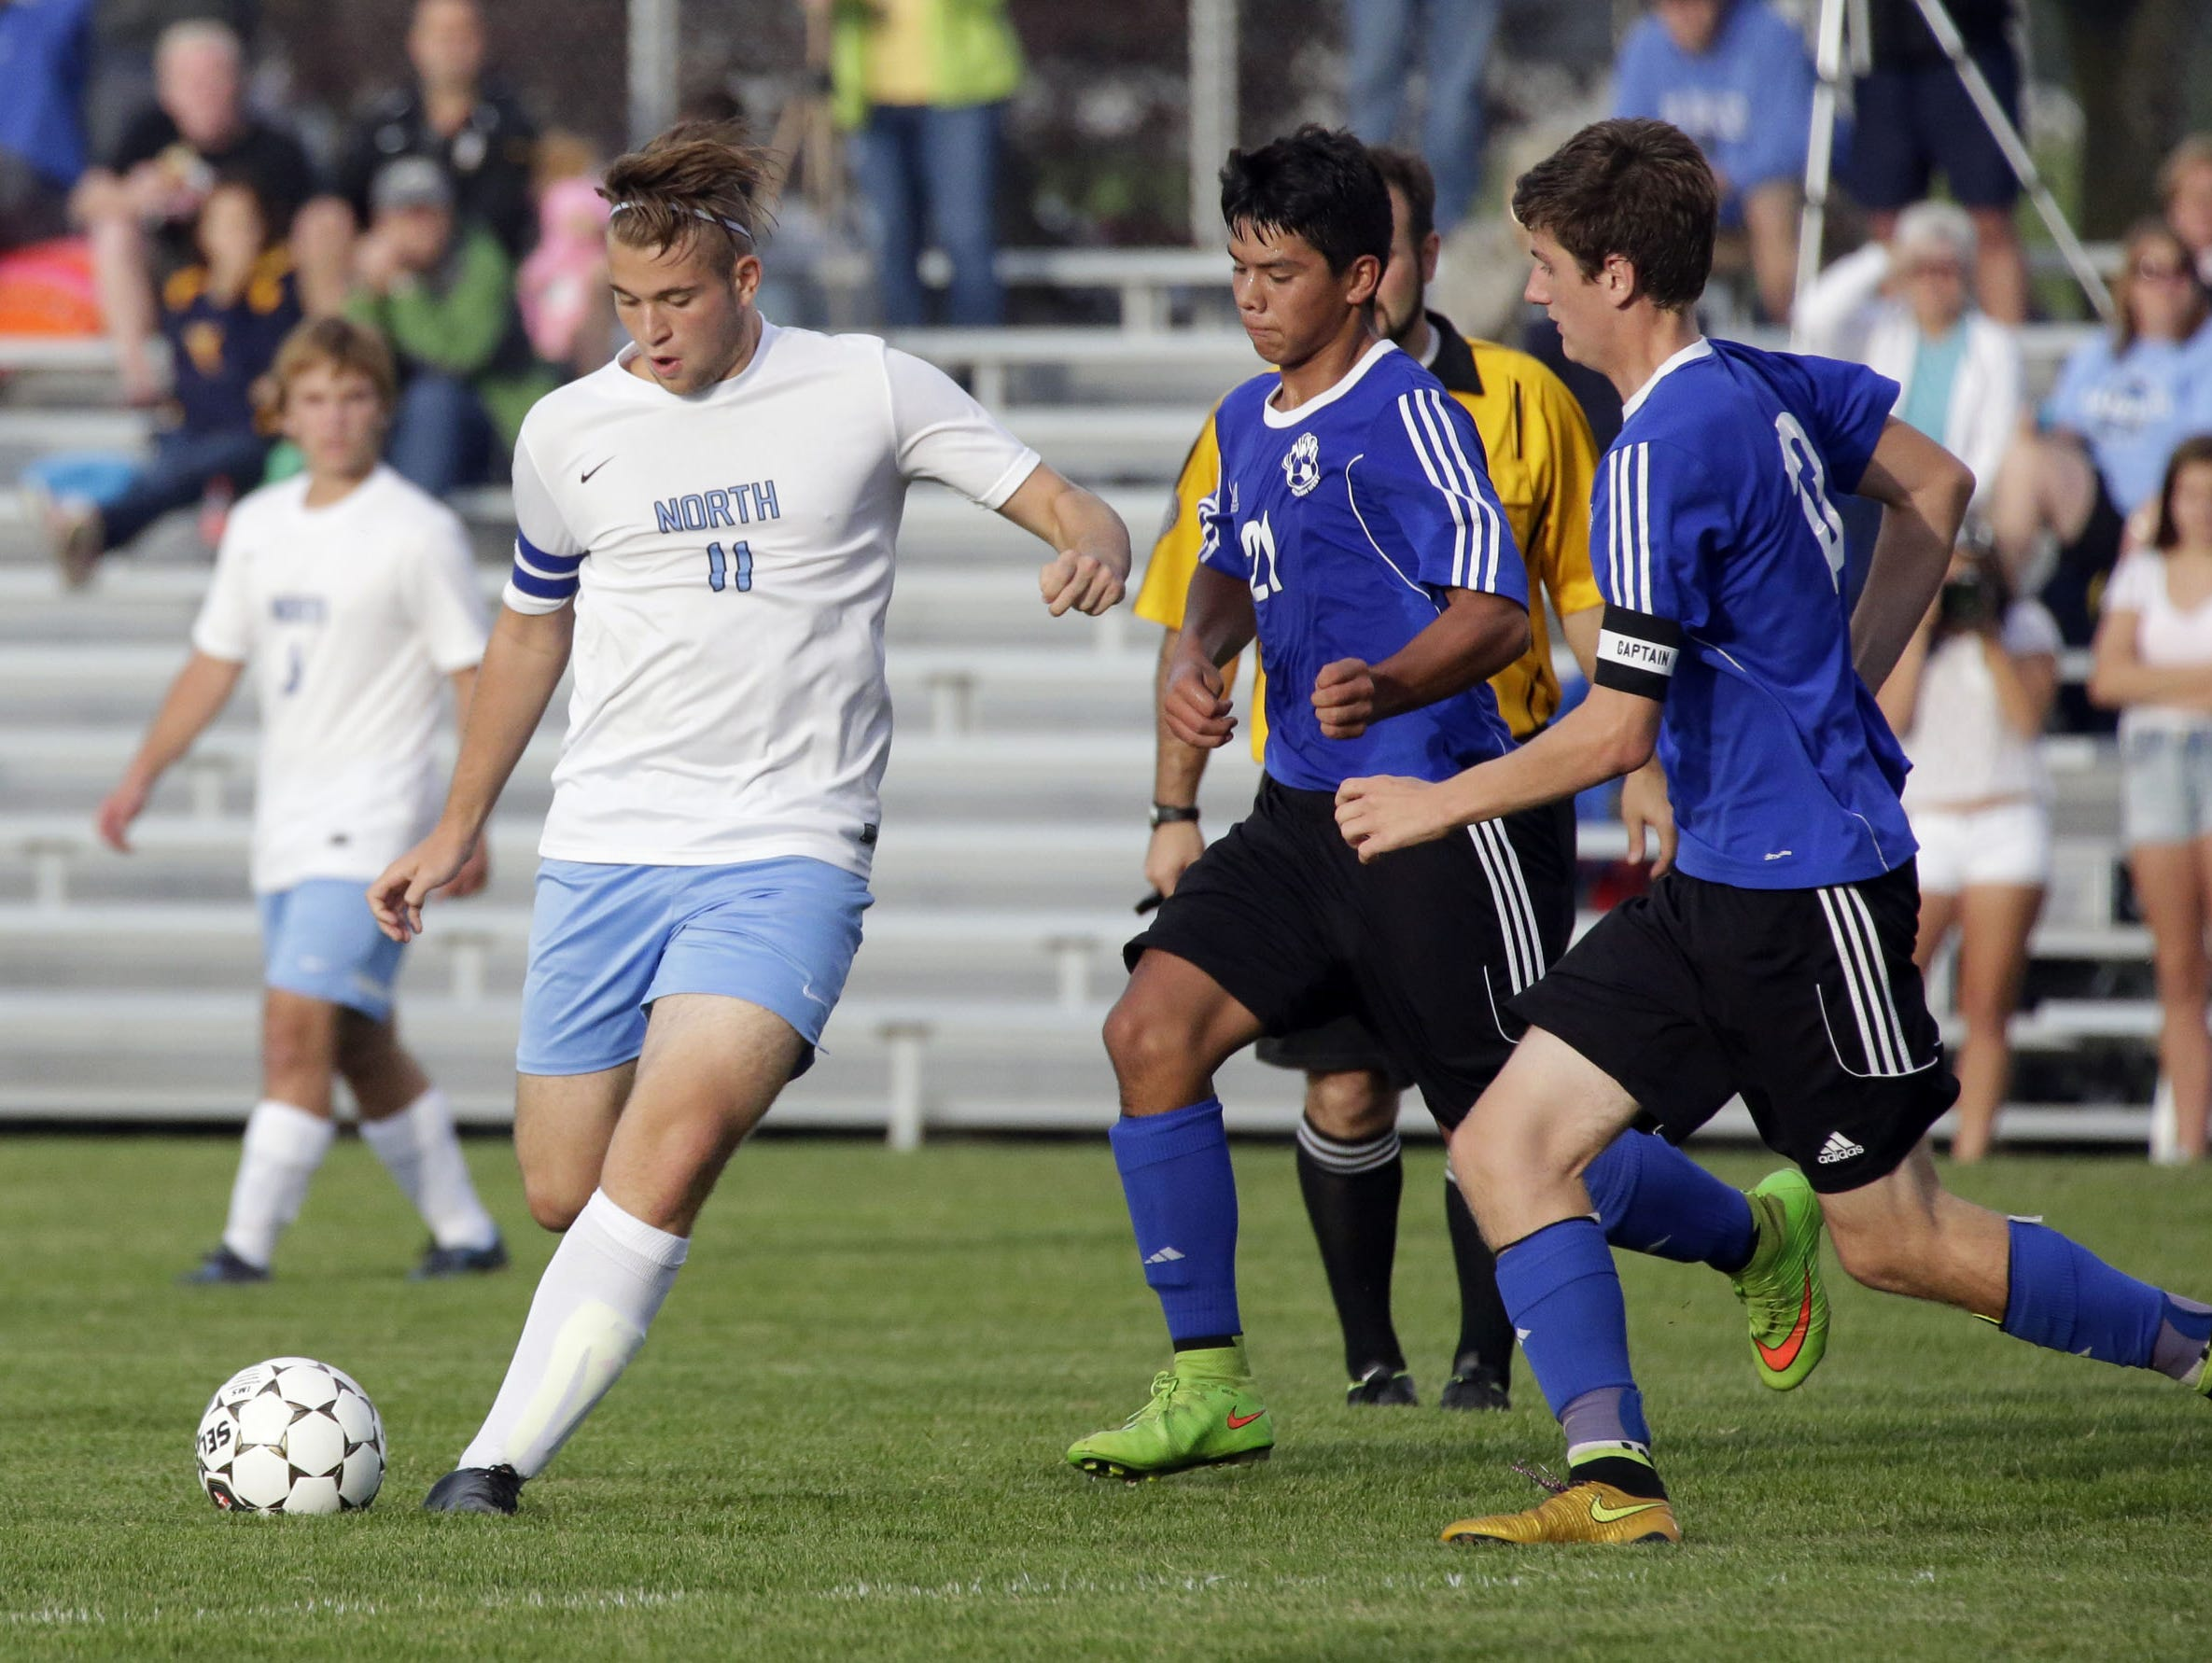 Sheboygan North senior Nicolo Vitale (11) was named the Player of the Year in the Fox River Classic Conference.